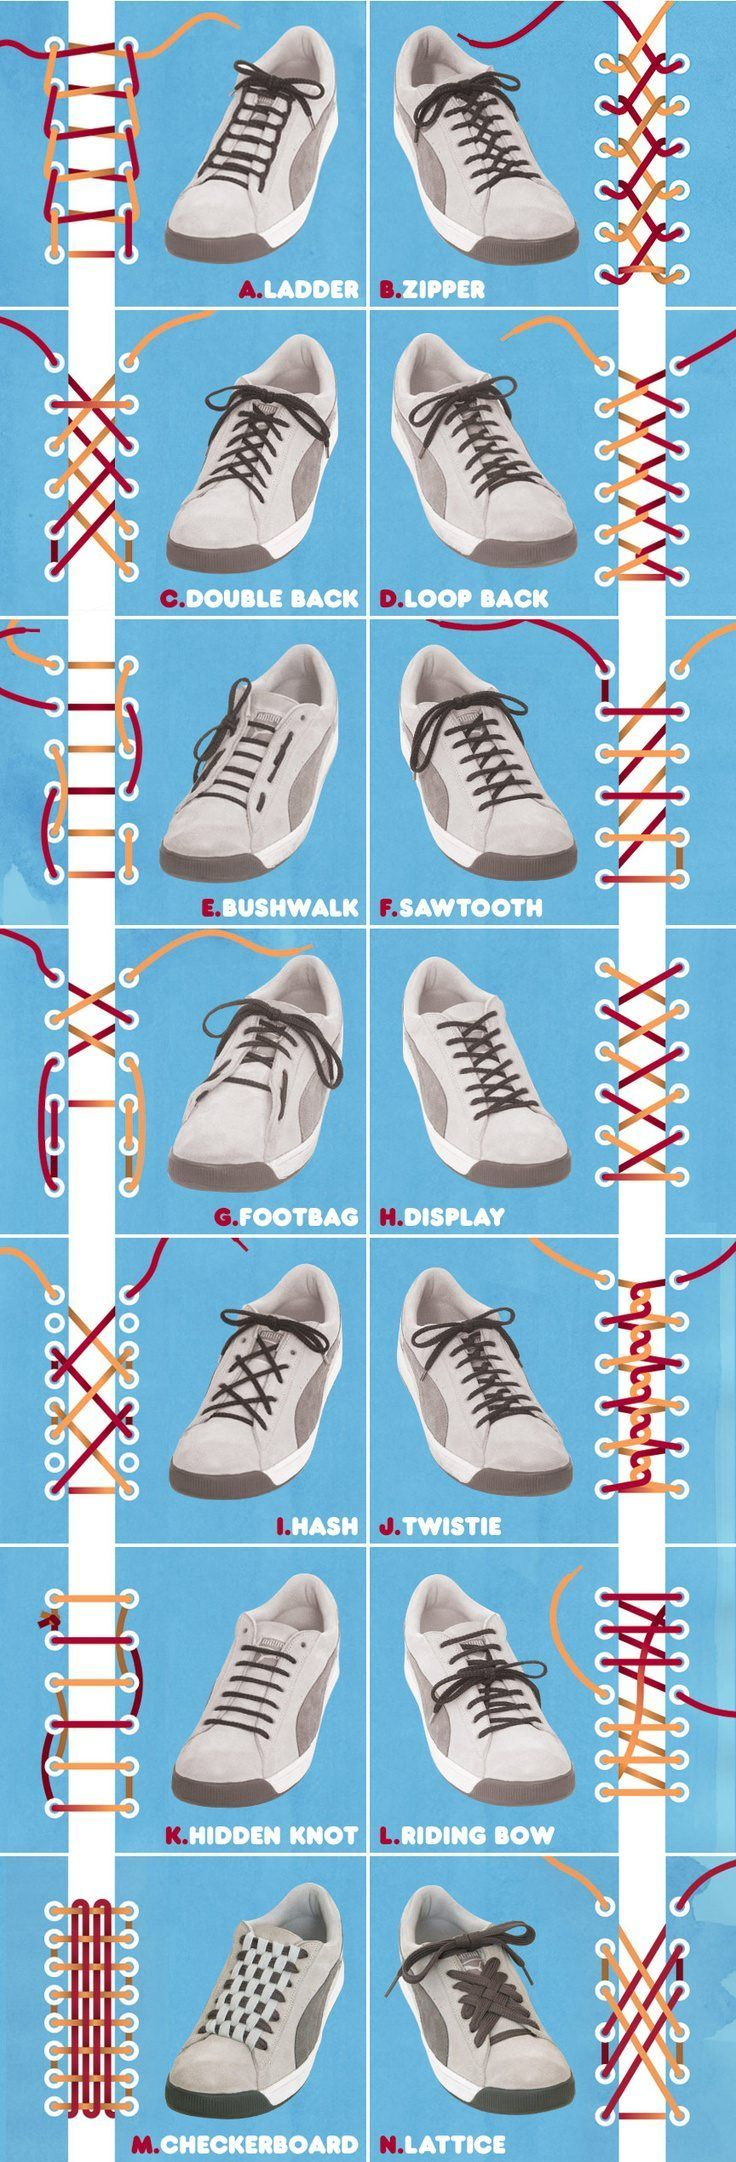 cool ways to tie shoelaces, easy ways to tie shoes